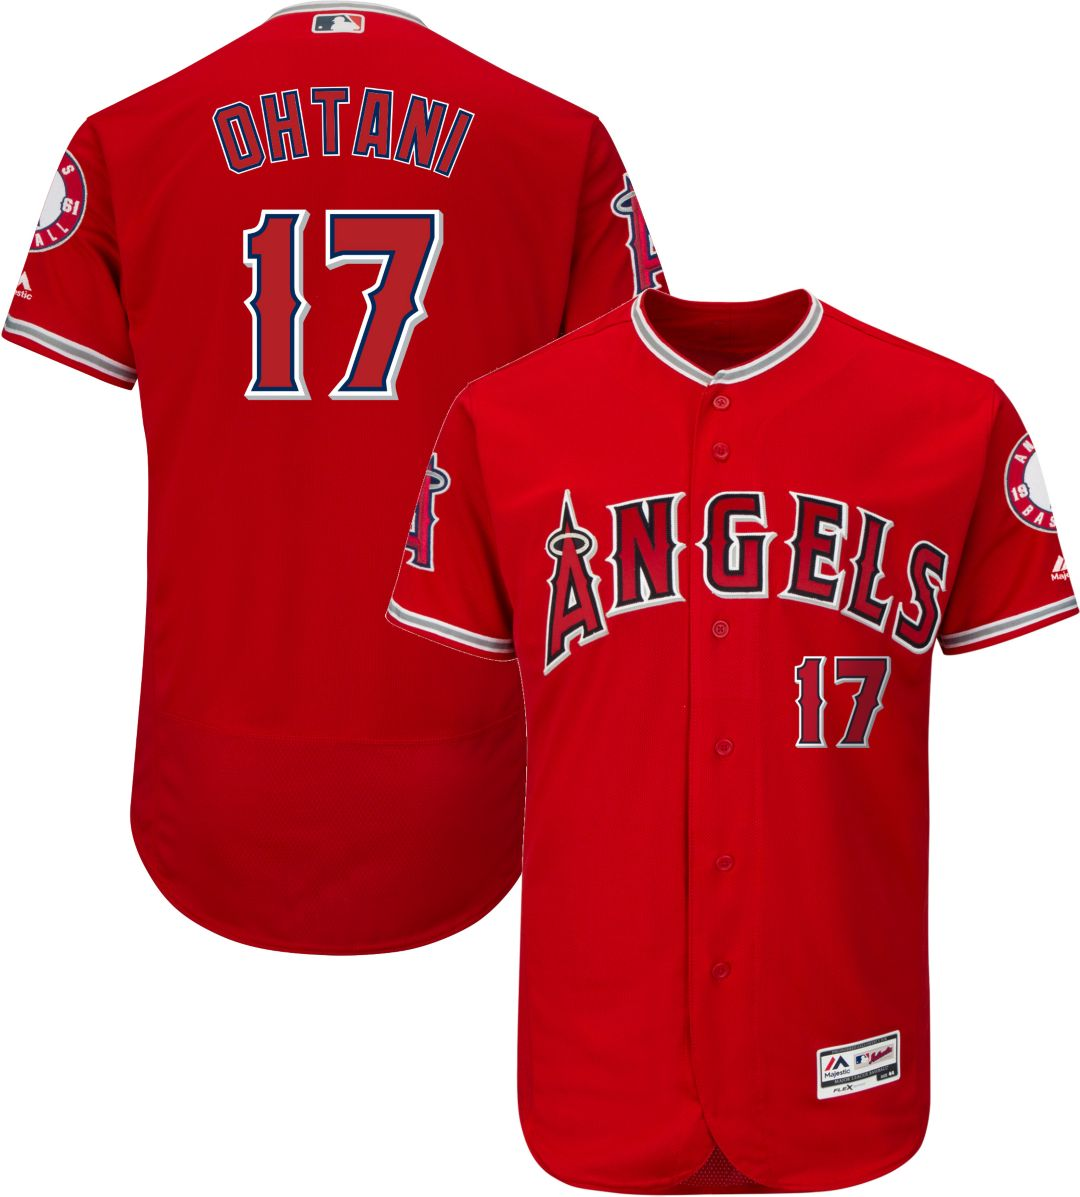 promo code c1330 9cffb Majestic Men's Authentic Los Angeles Angels Shohei Ohtani #17 Flex Base  Alternate Red On-Field Jersey